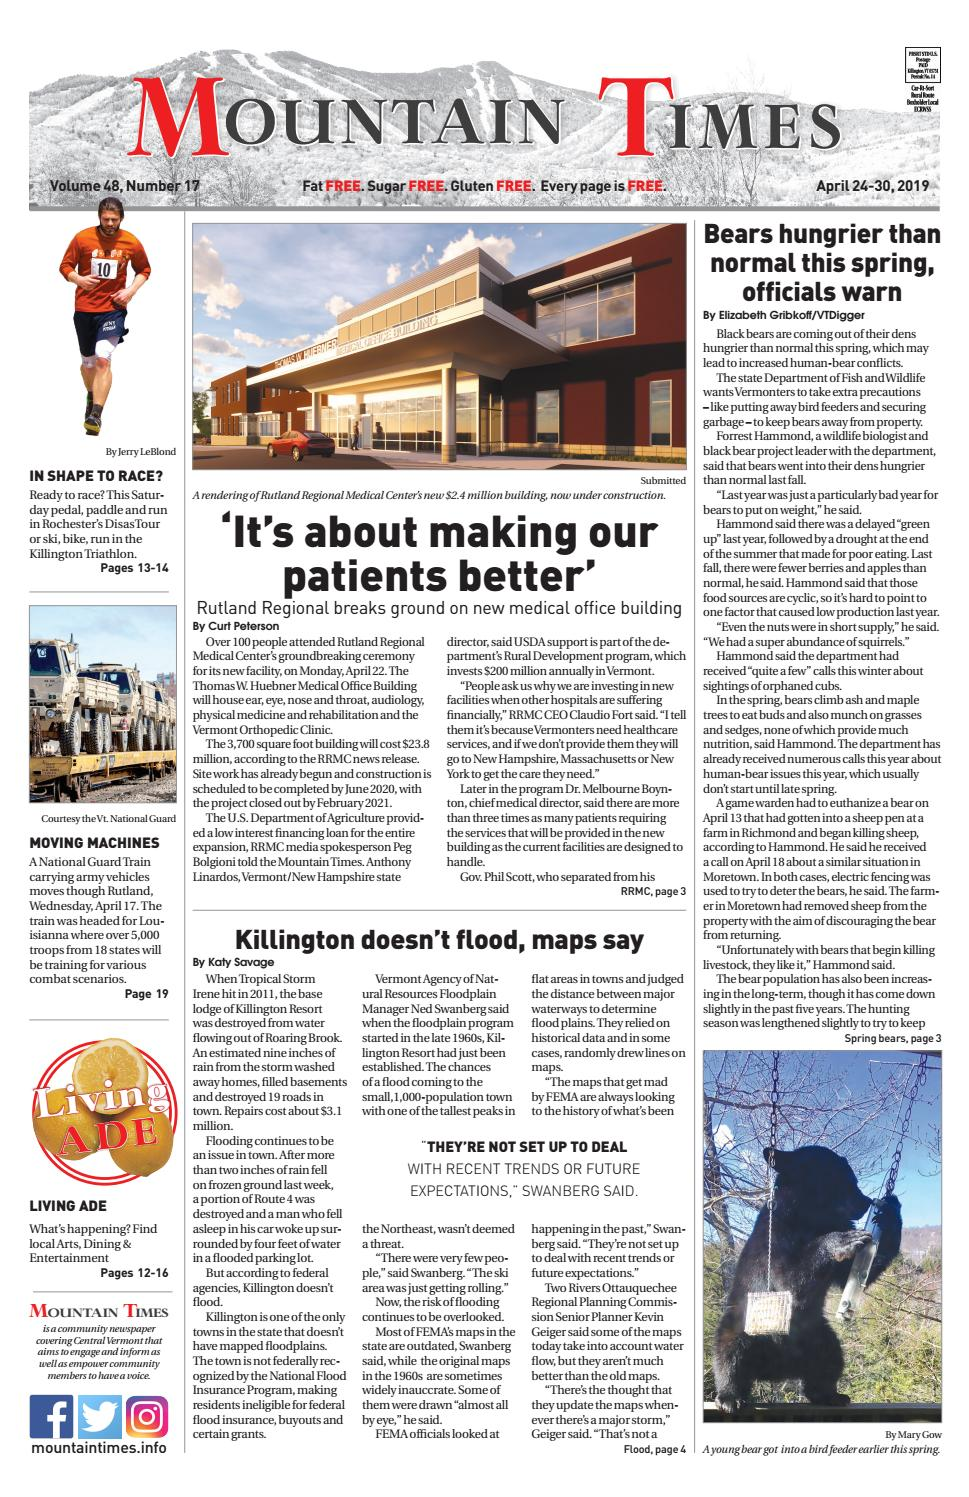 Mountain Times April 24-30, 2019 by Polly Lynn - issuu